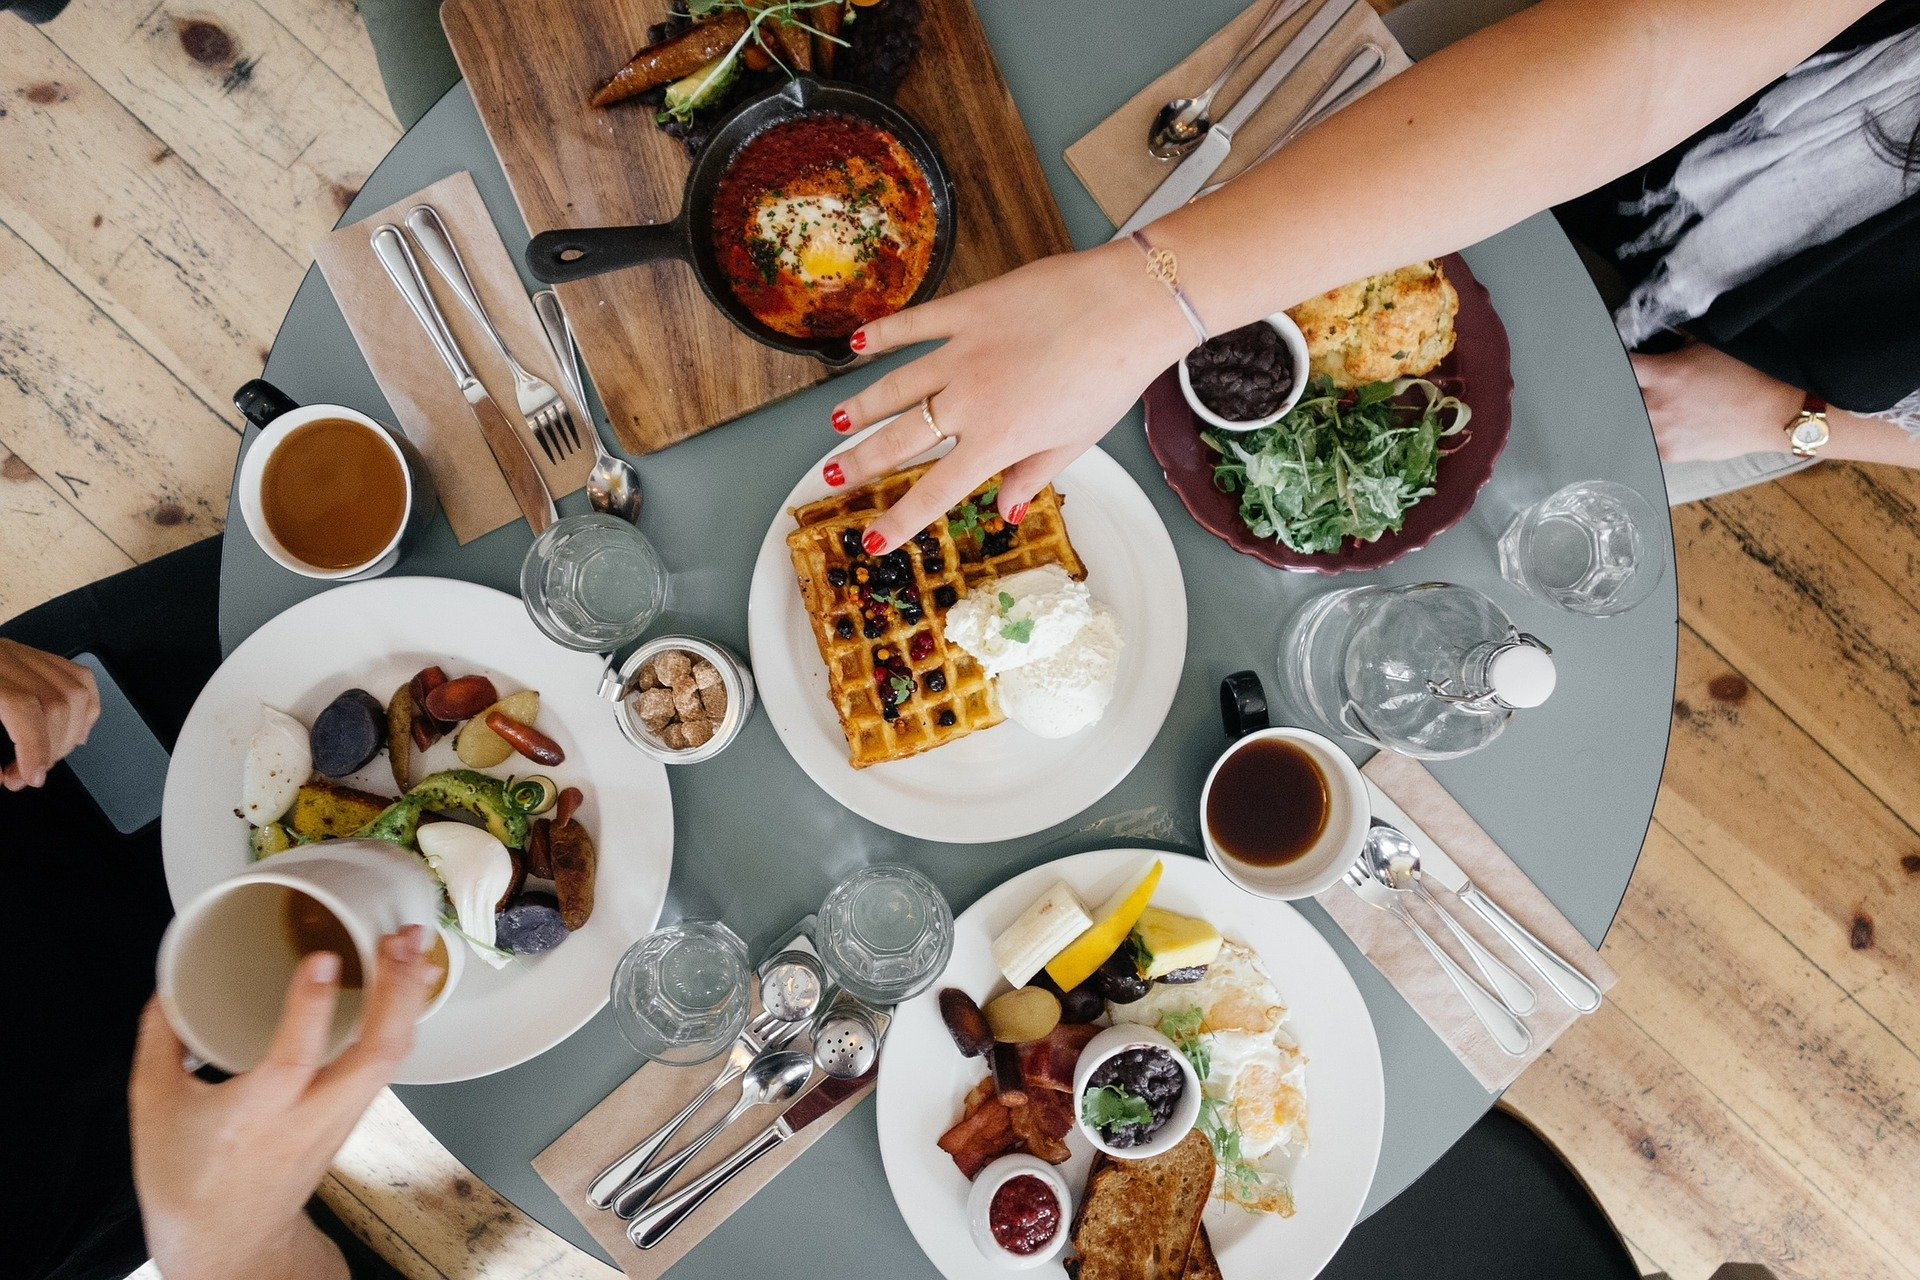 Tips for Sustainable Eating Out